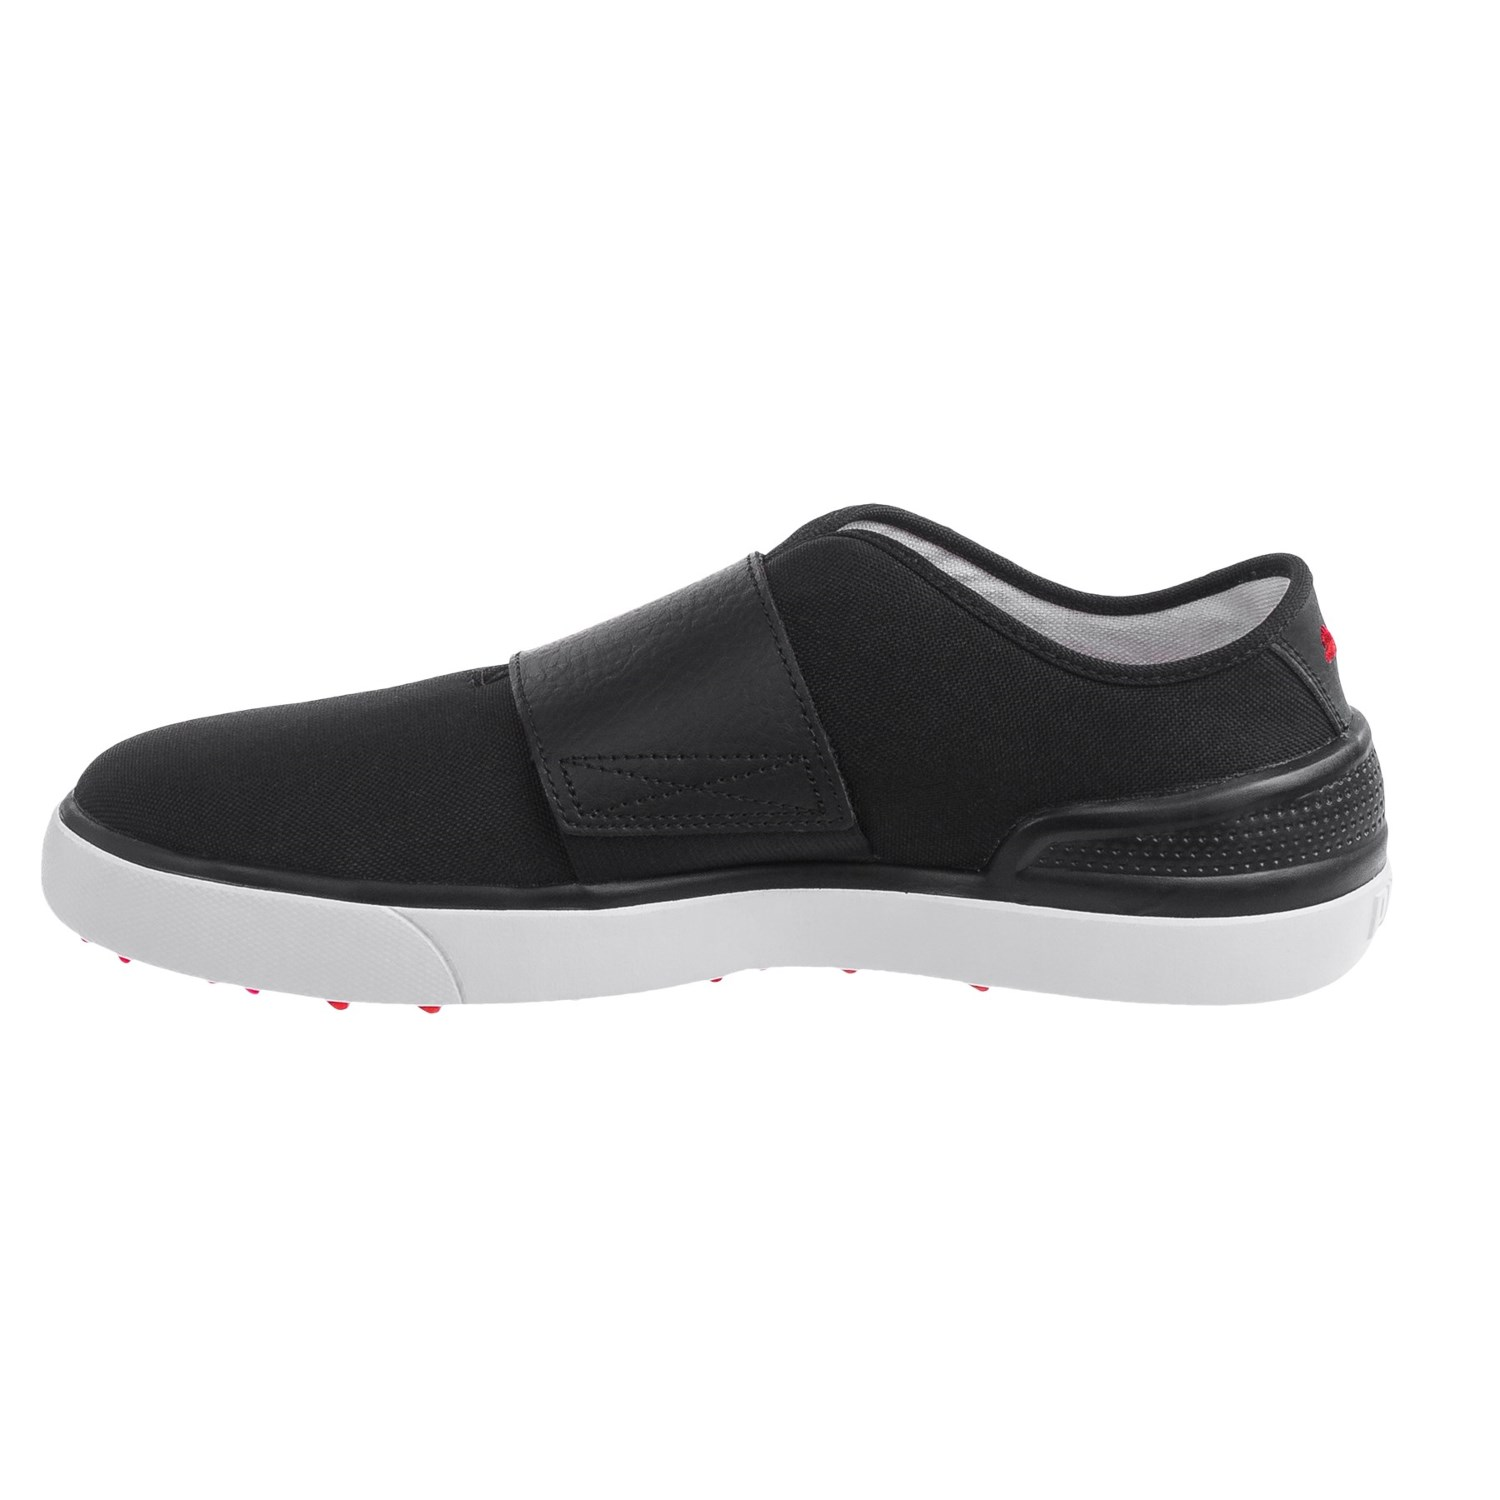 monolite el golf shoes for save 51